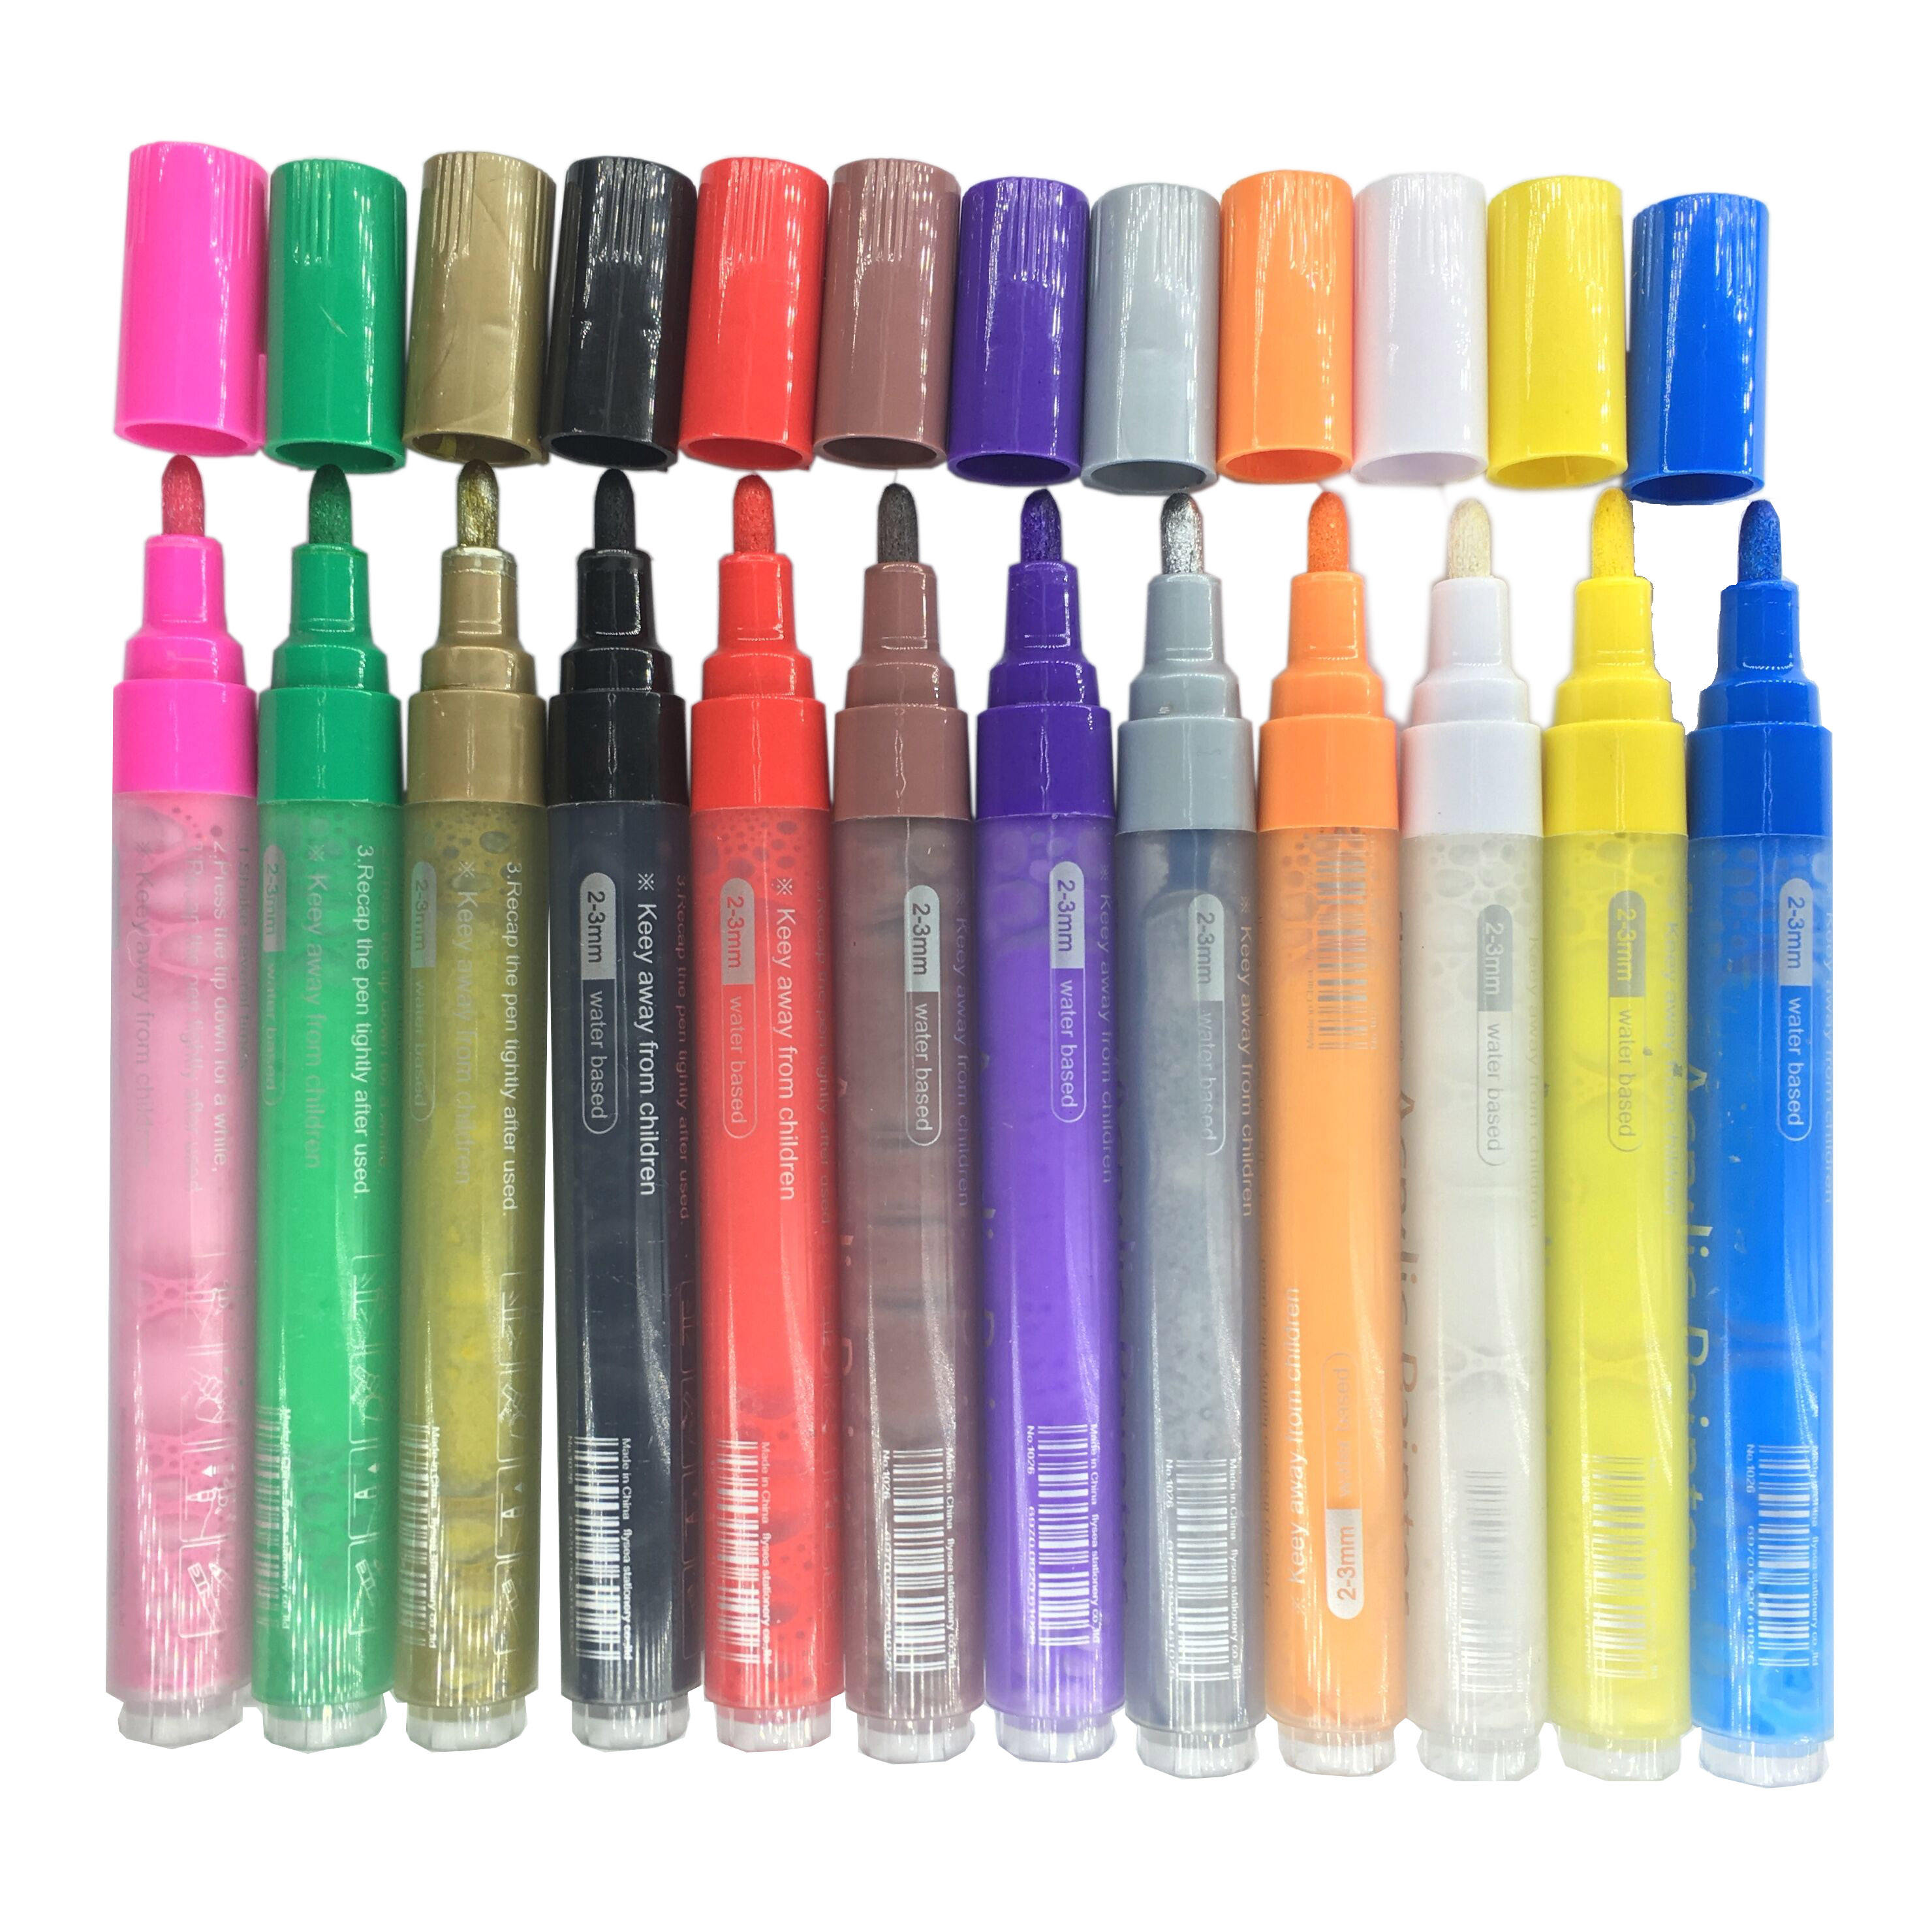 Write on Glass painting, Ceramic, Porcelain, Metal, Wood, Plastic Permanent Waterproof Metallic Acrylic Paint Marker Pens